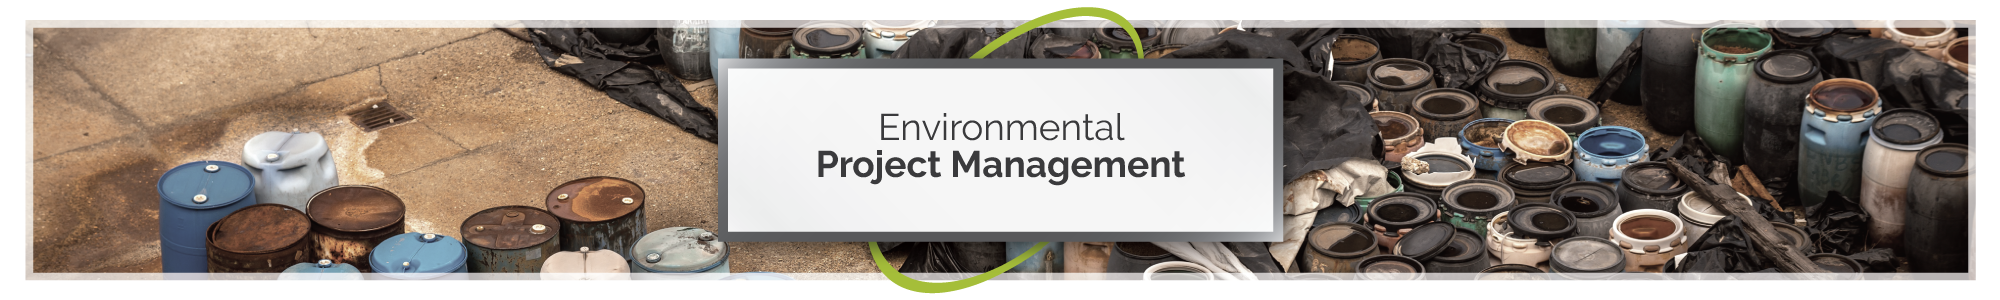 Project-Management-Head